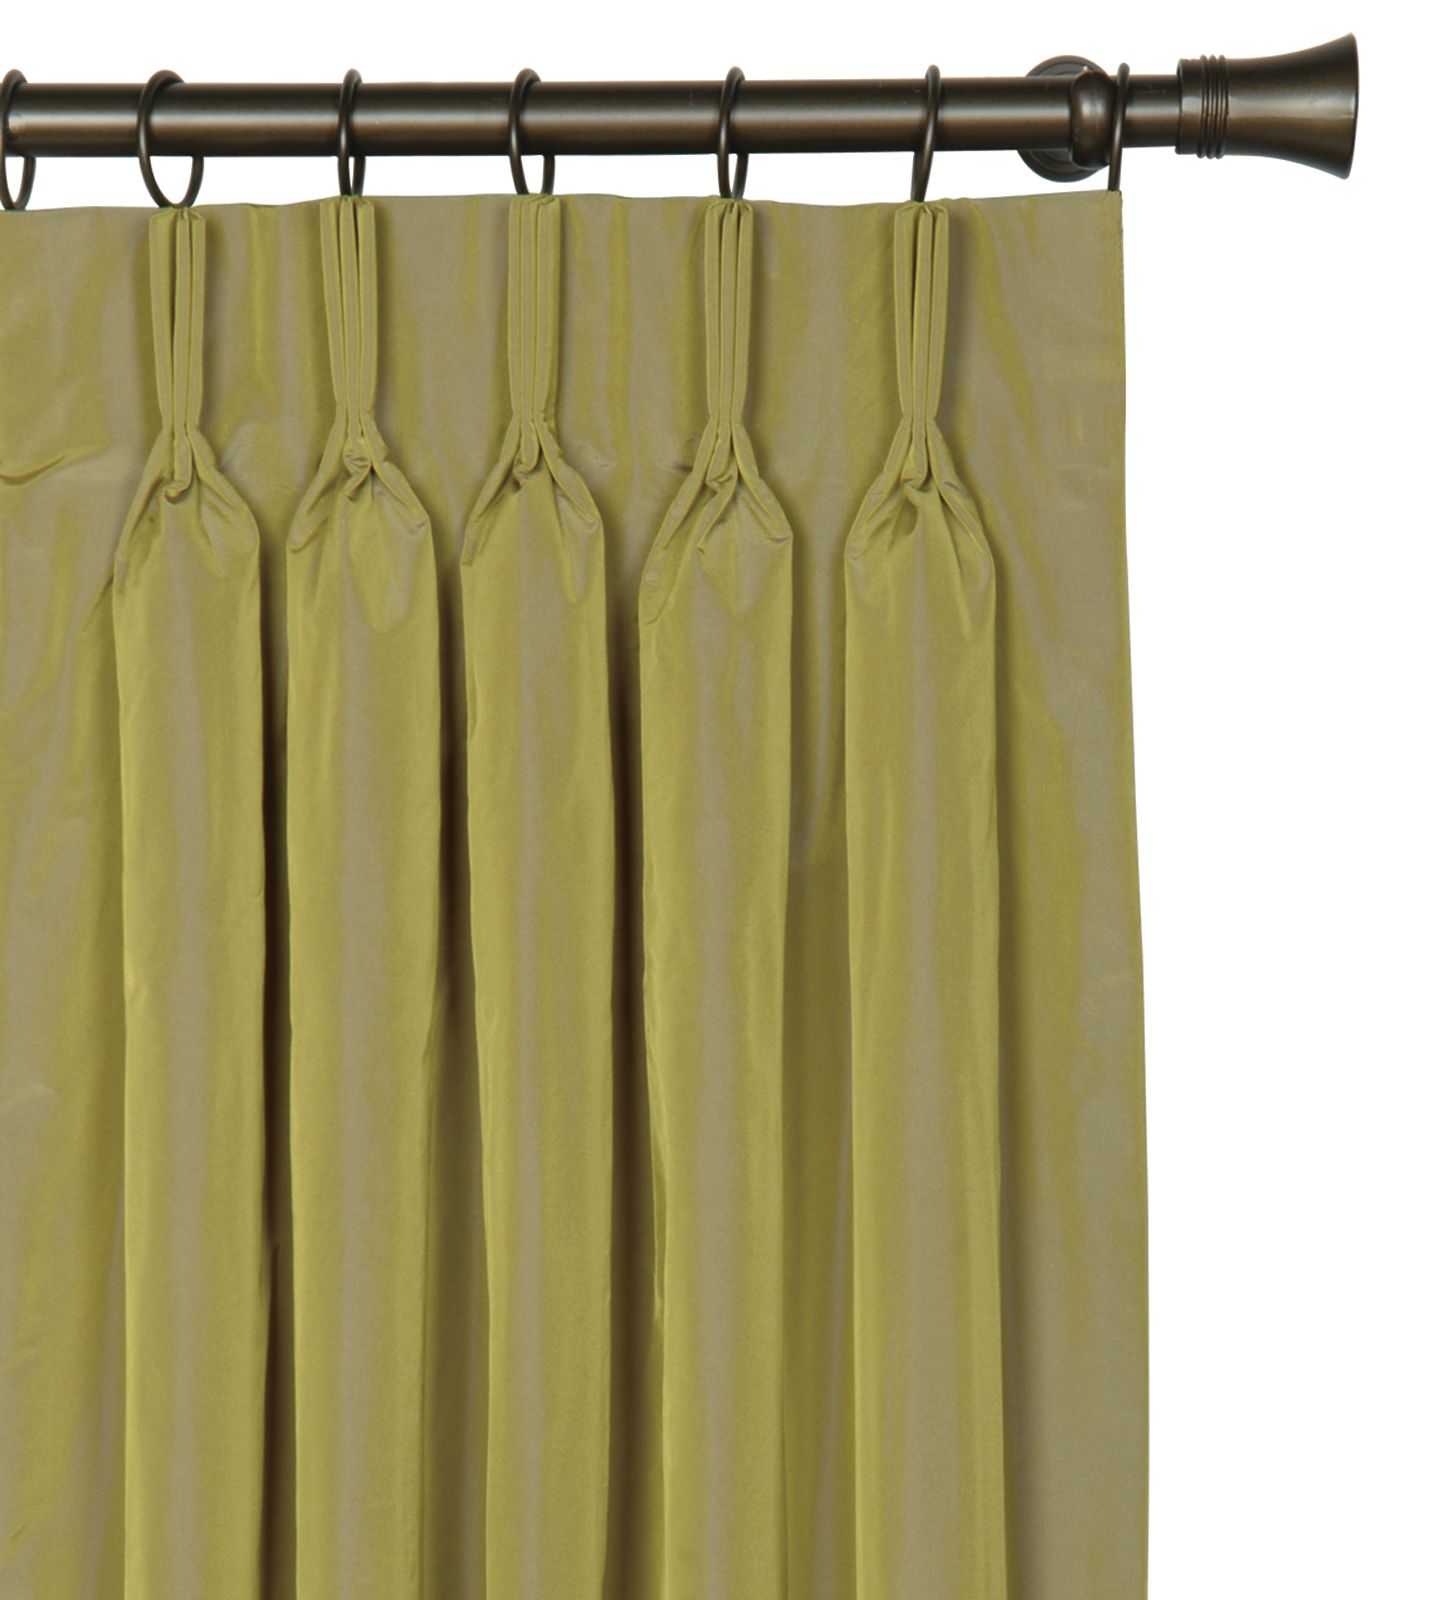 Box Pleat Curtains Curtains And Shades Pinterest